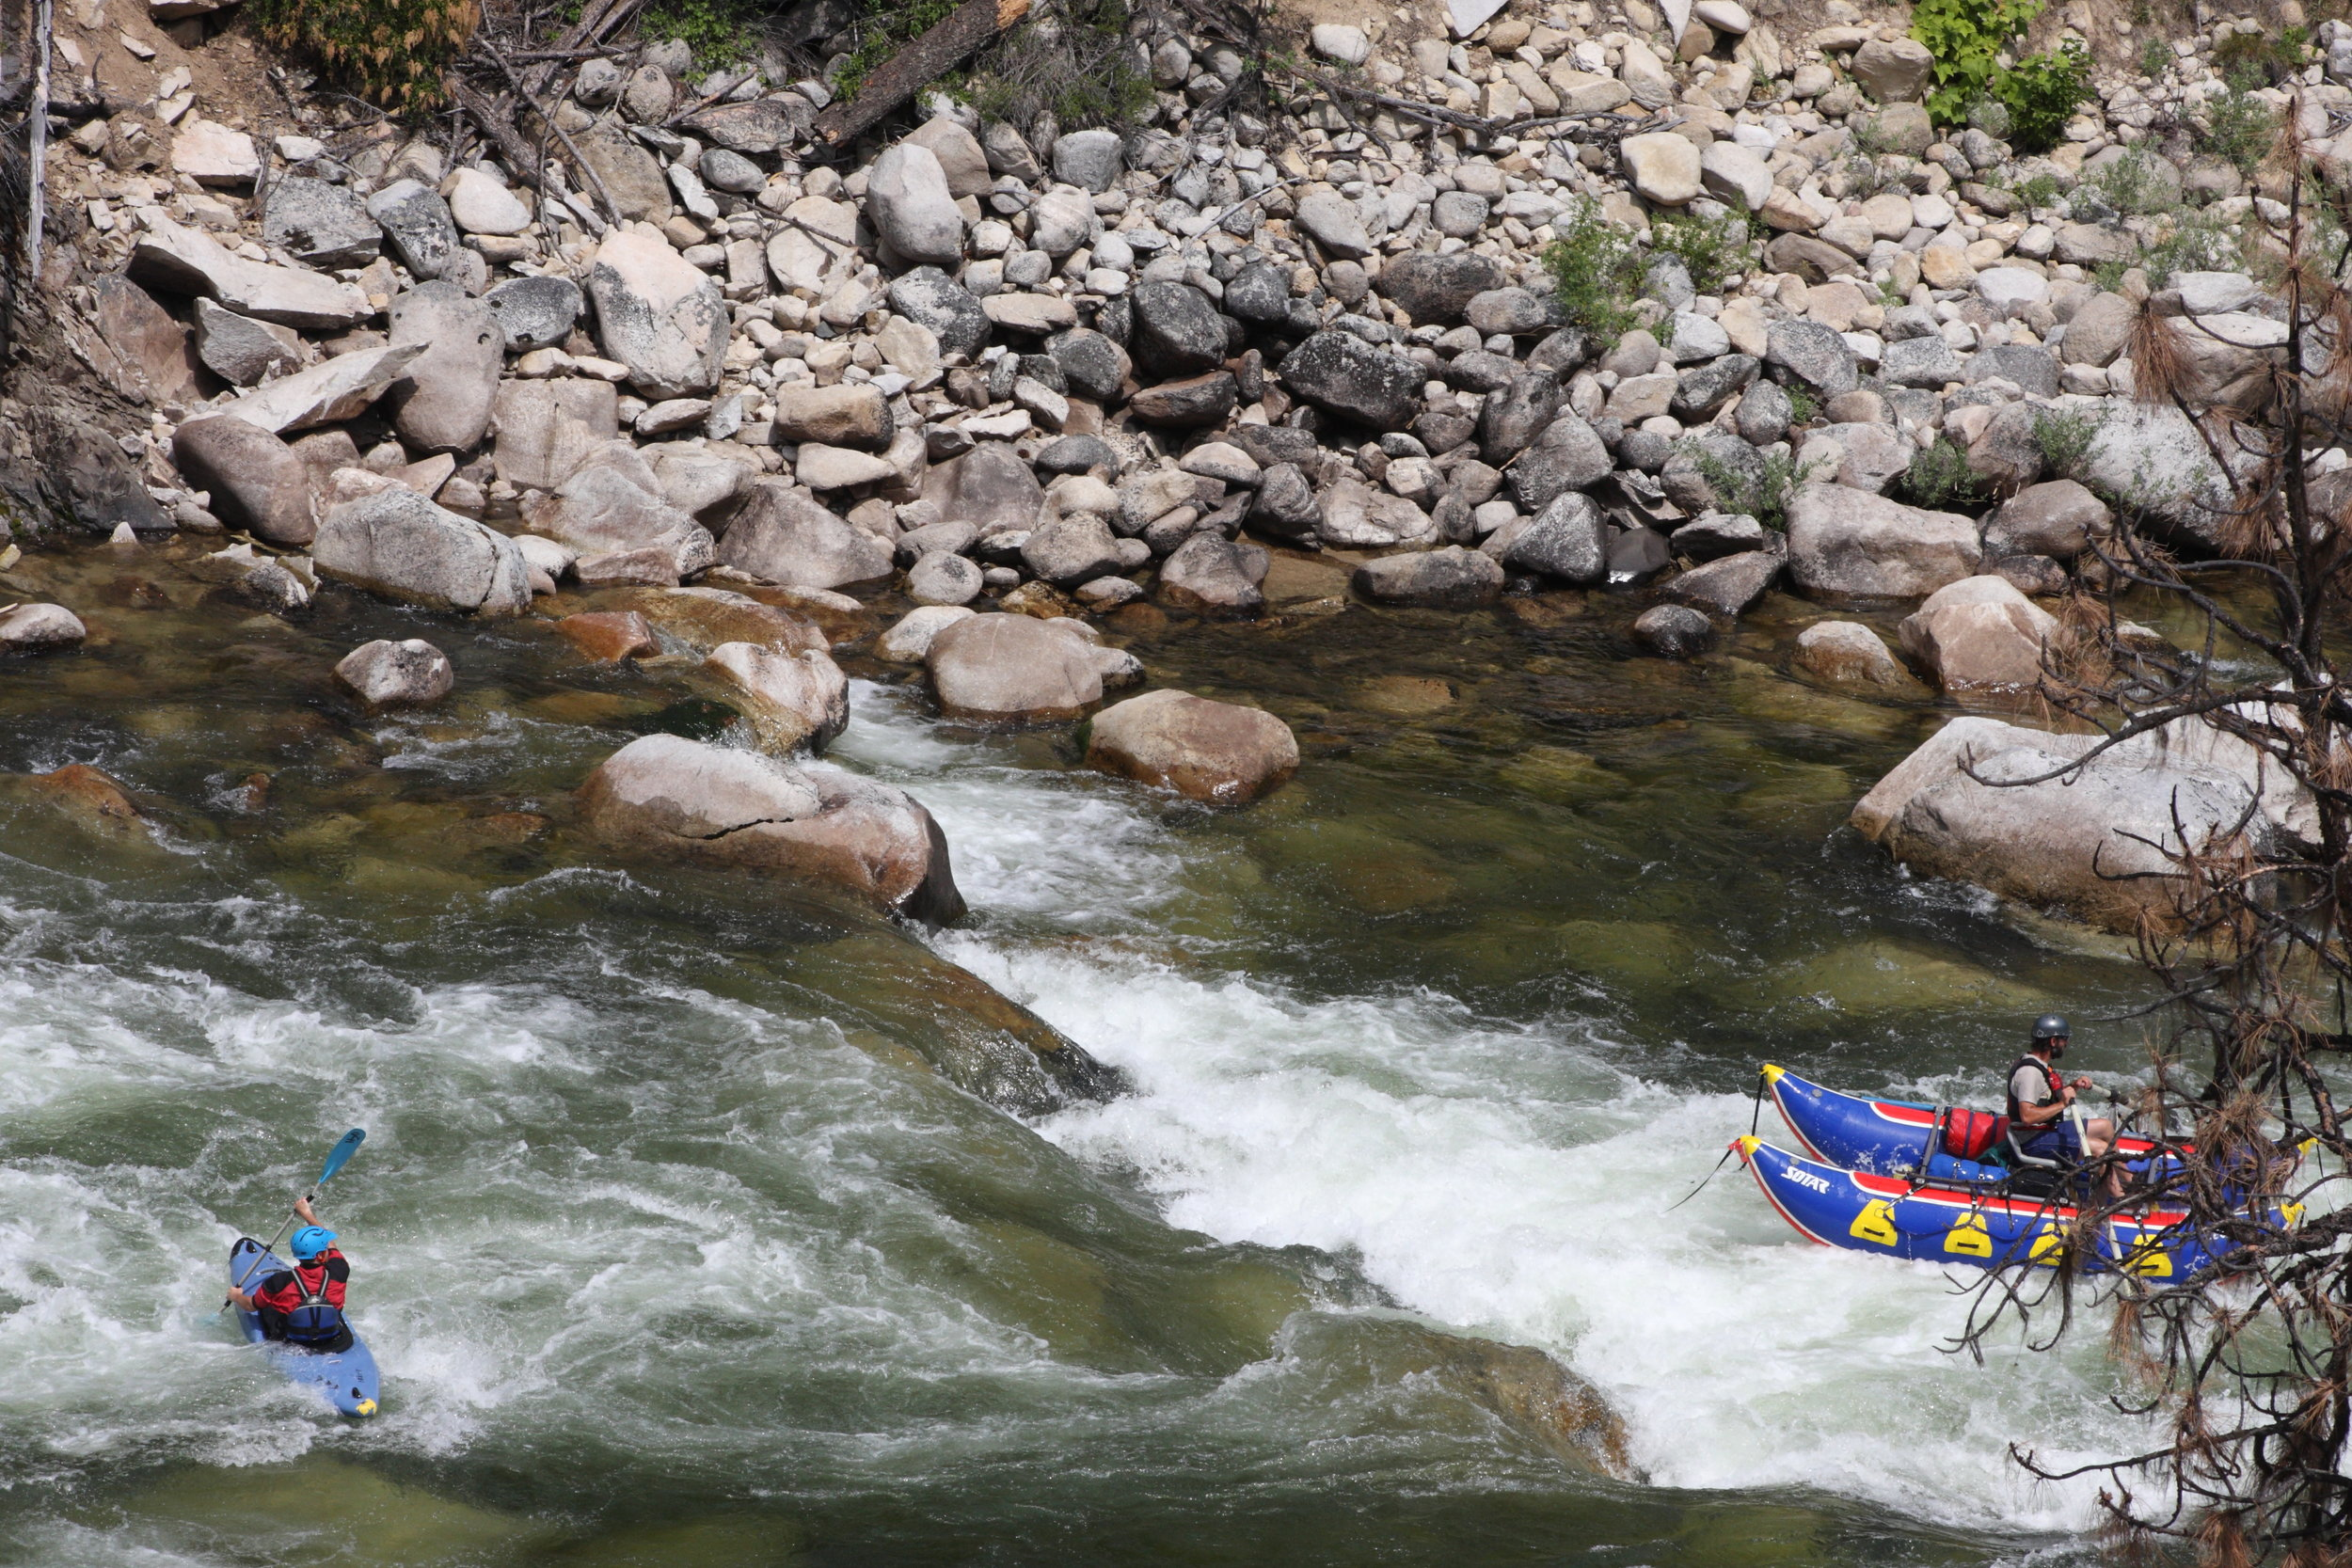 Beautiful whitewater on the South Fork